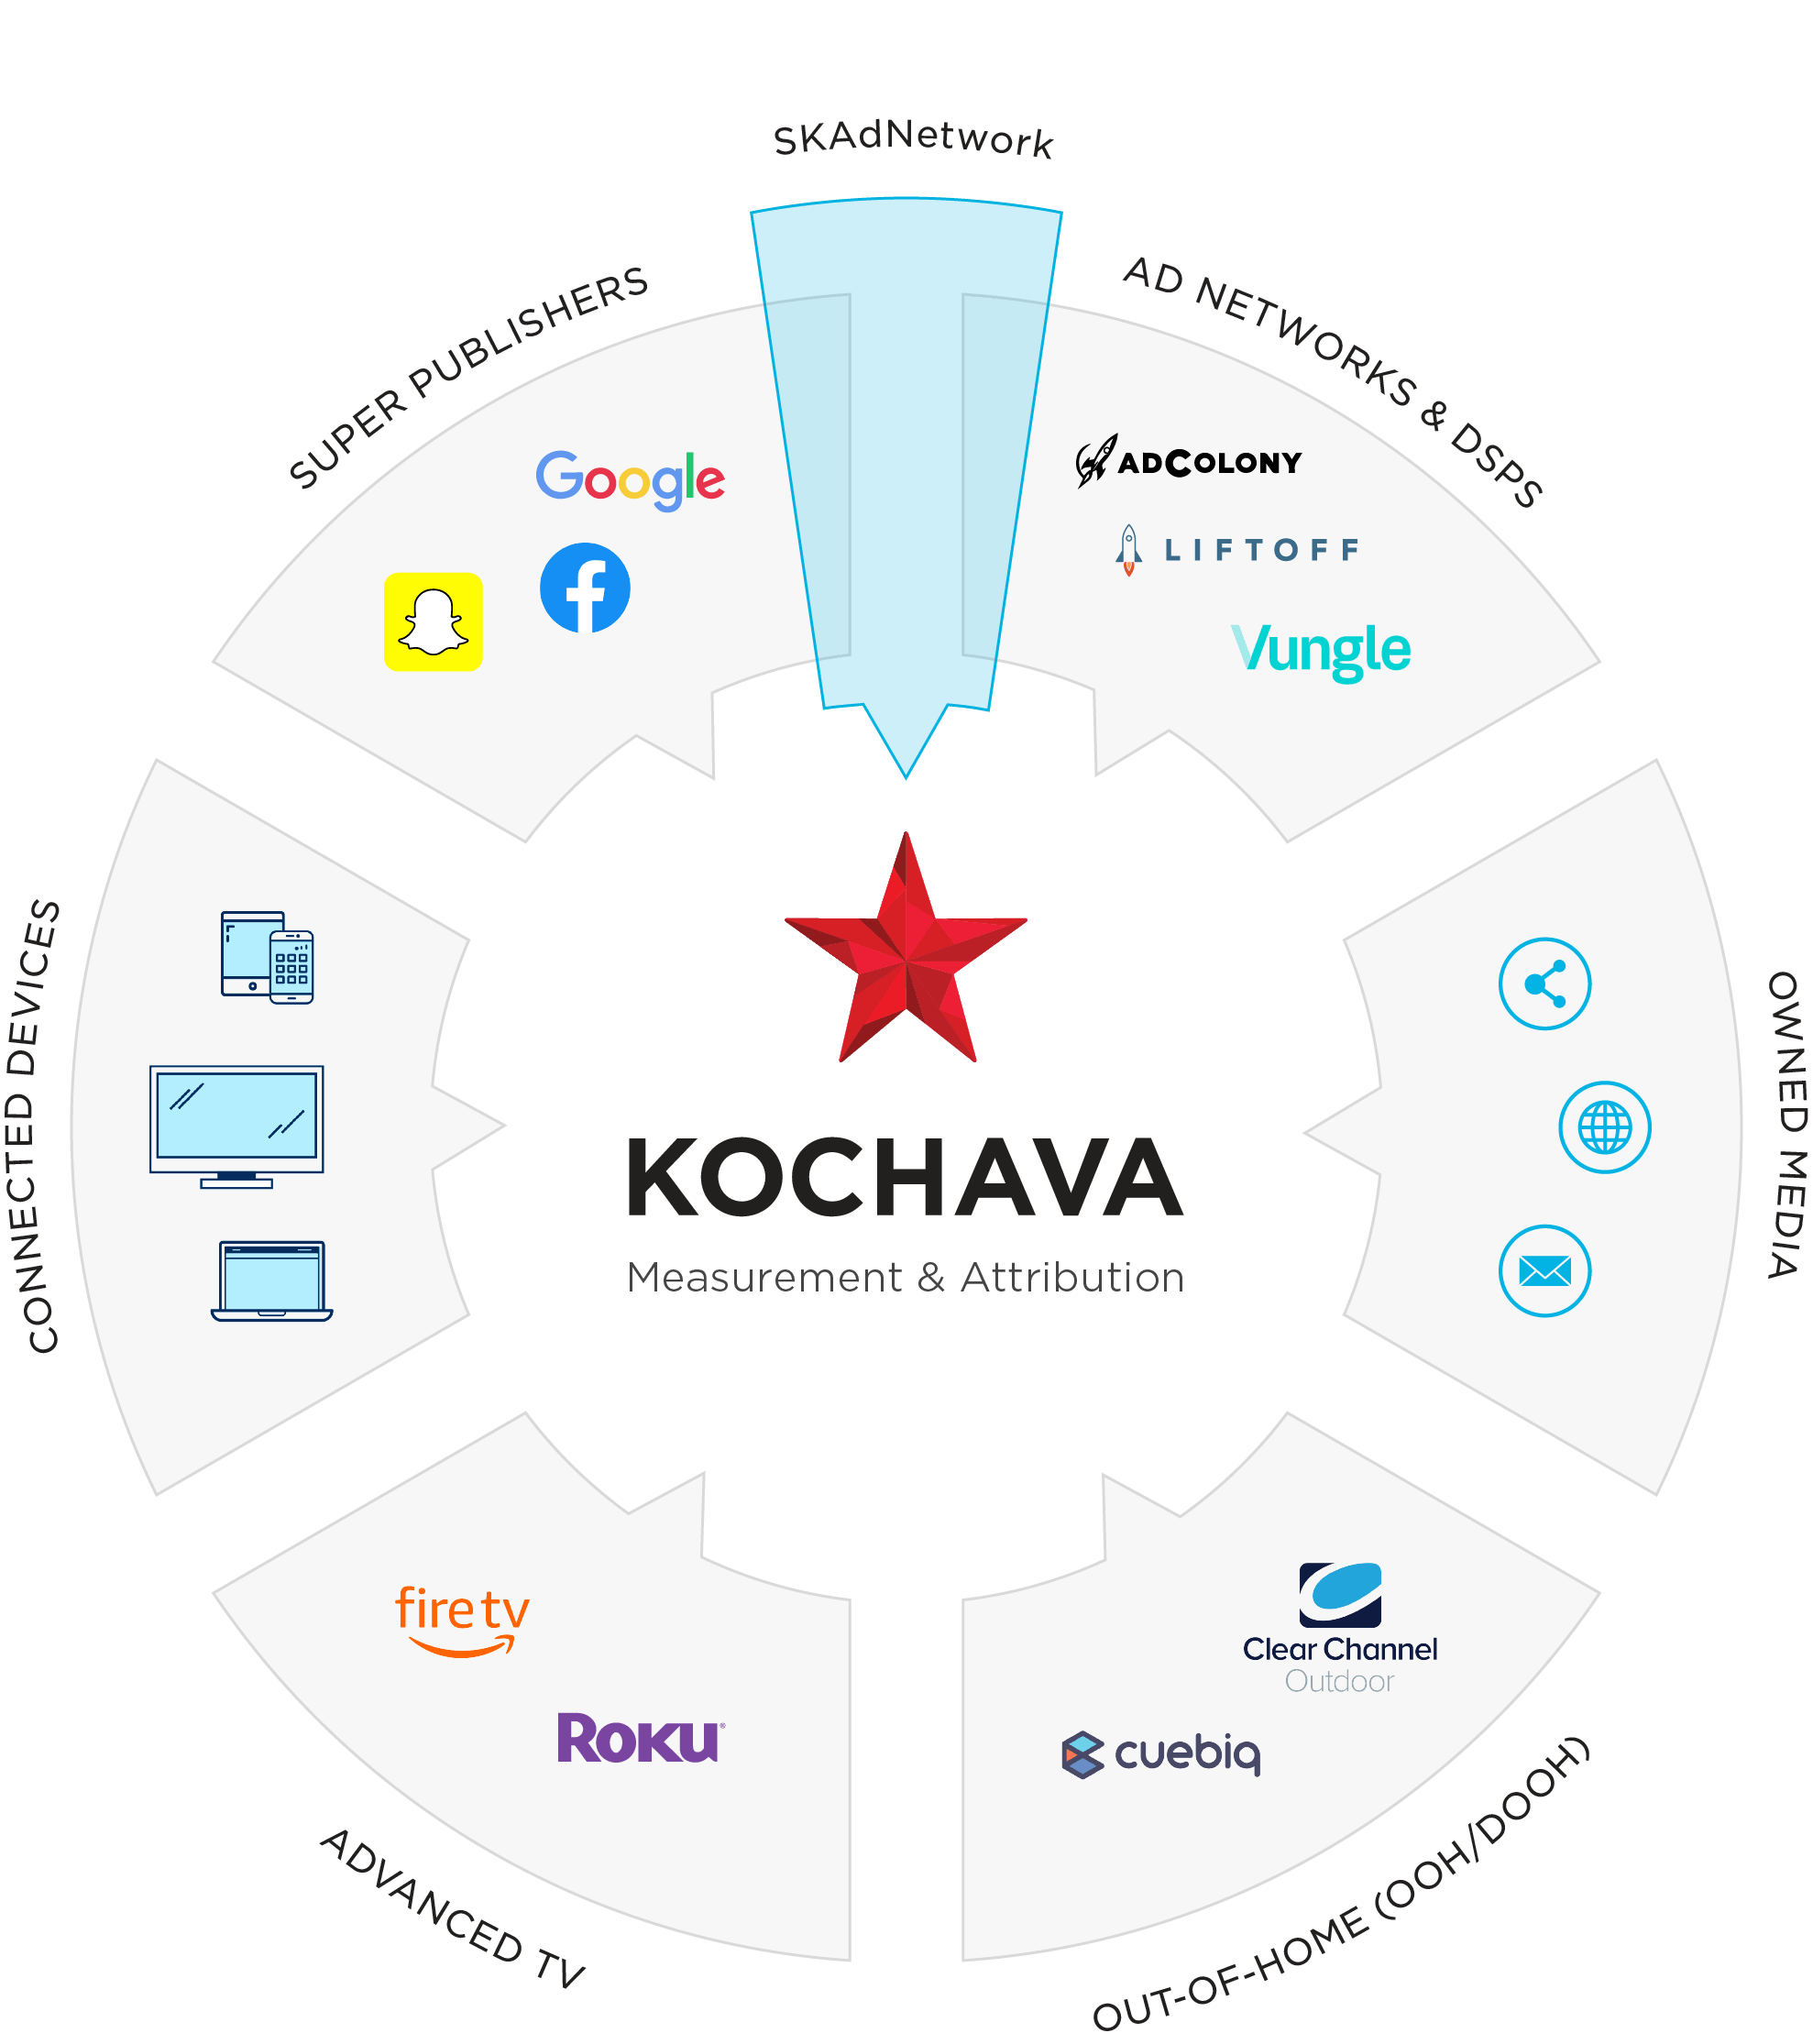 Kochava omni-channel and SKAdNetwork solution graphic